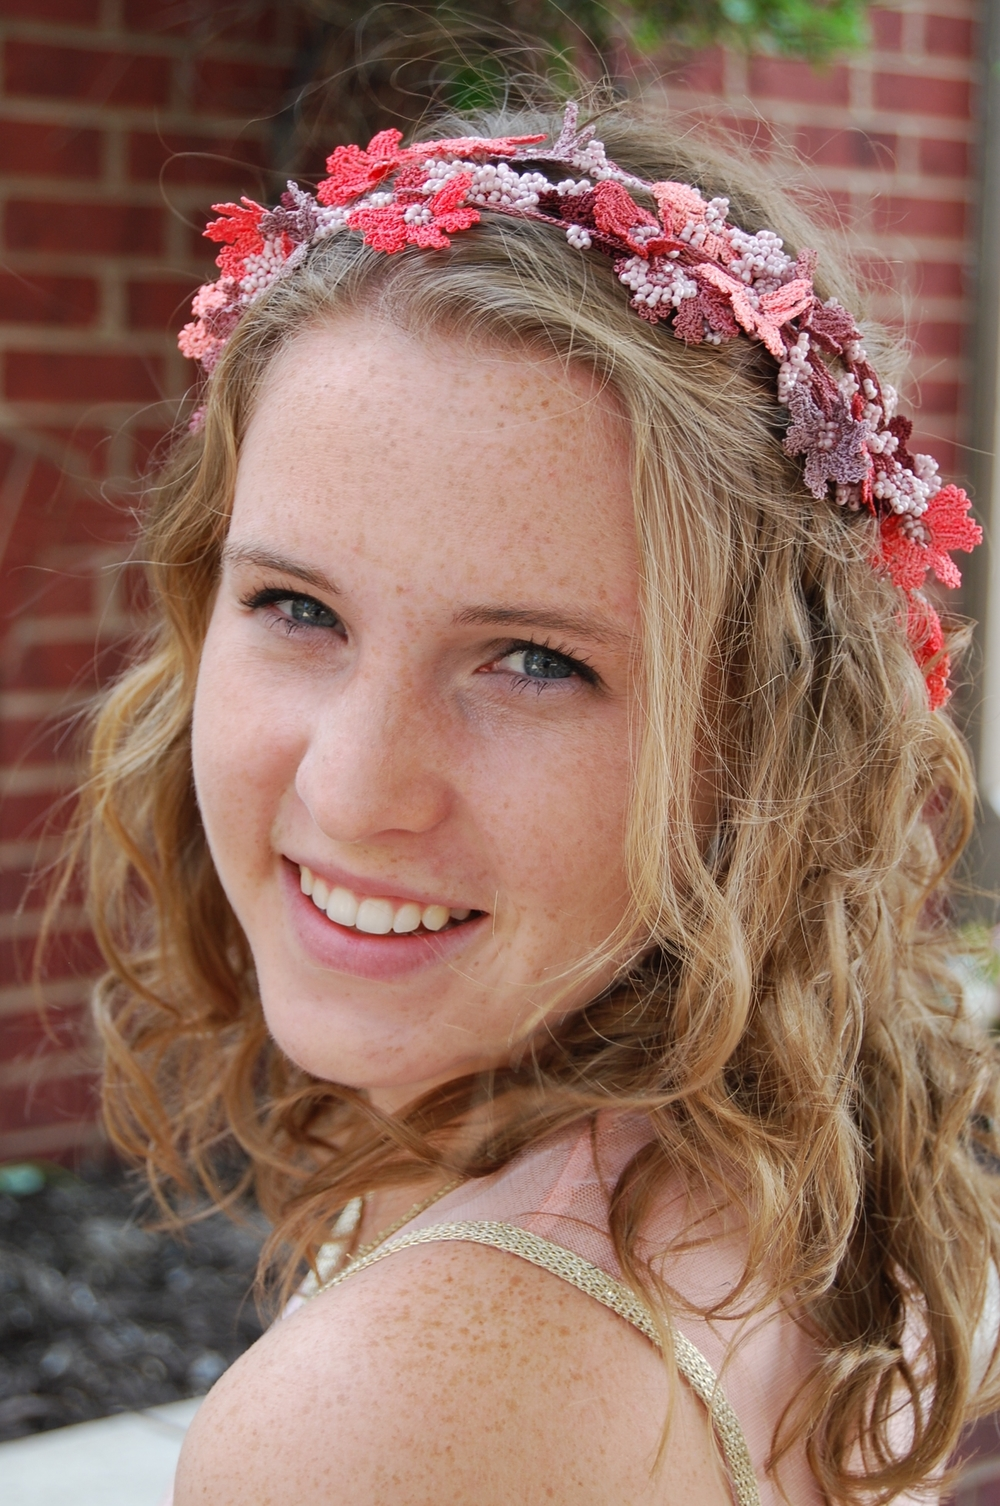 Maria doning our Kisa Signature OYA lace flower crown or necklace—handmade & one of a kind.